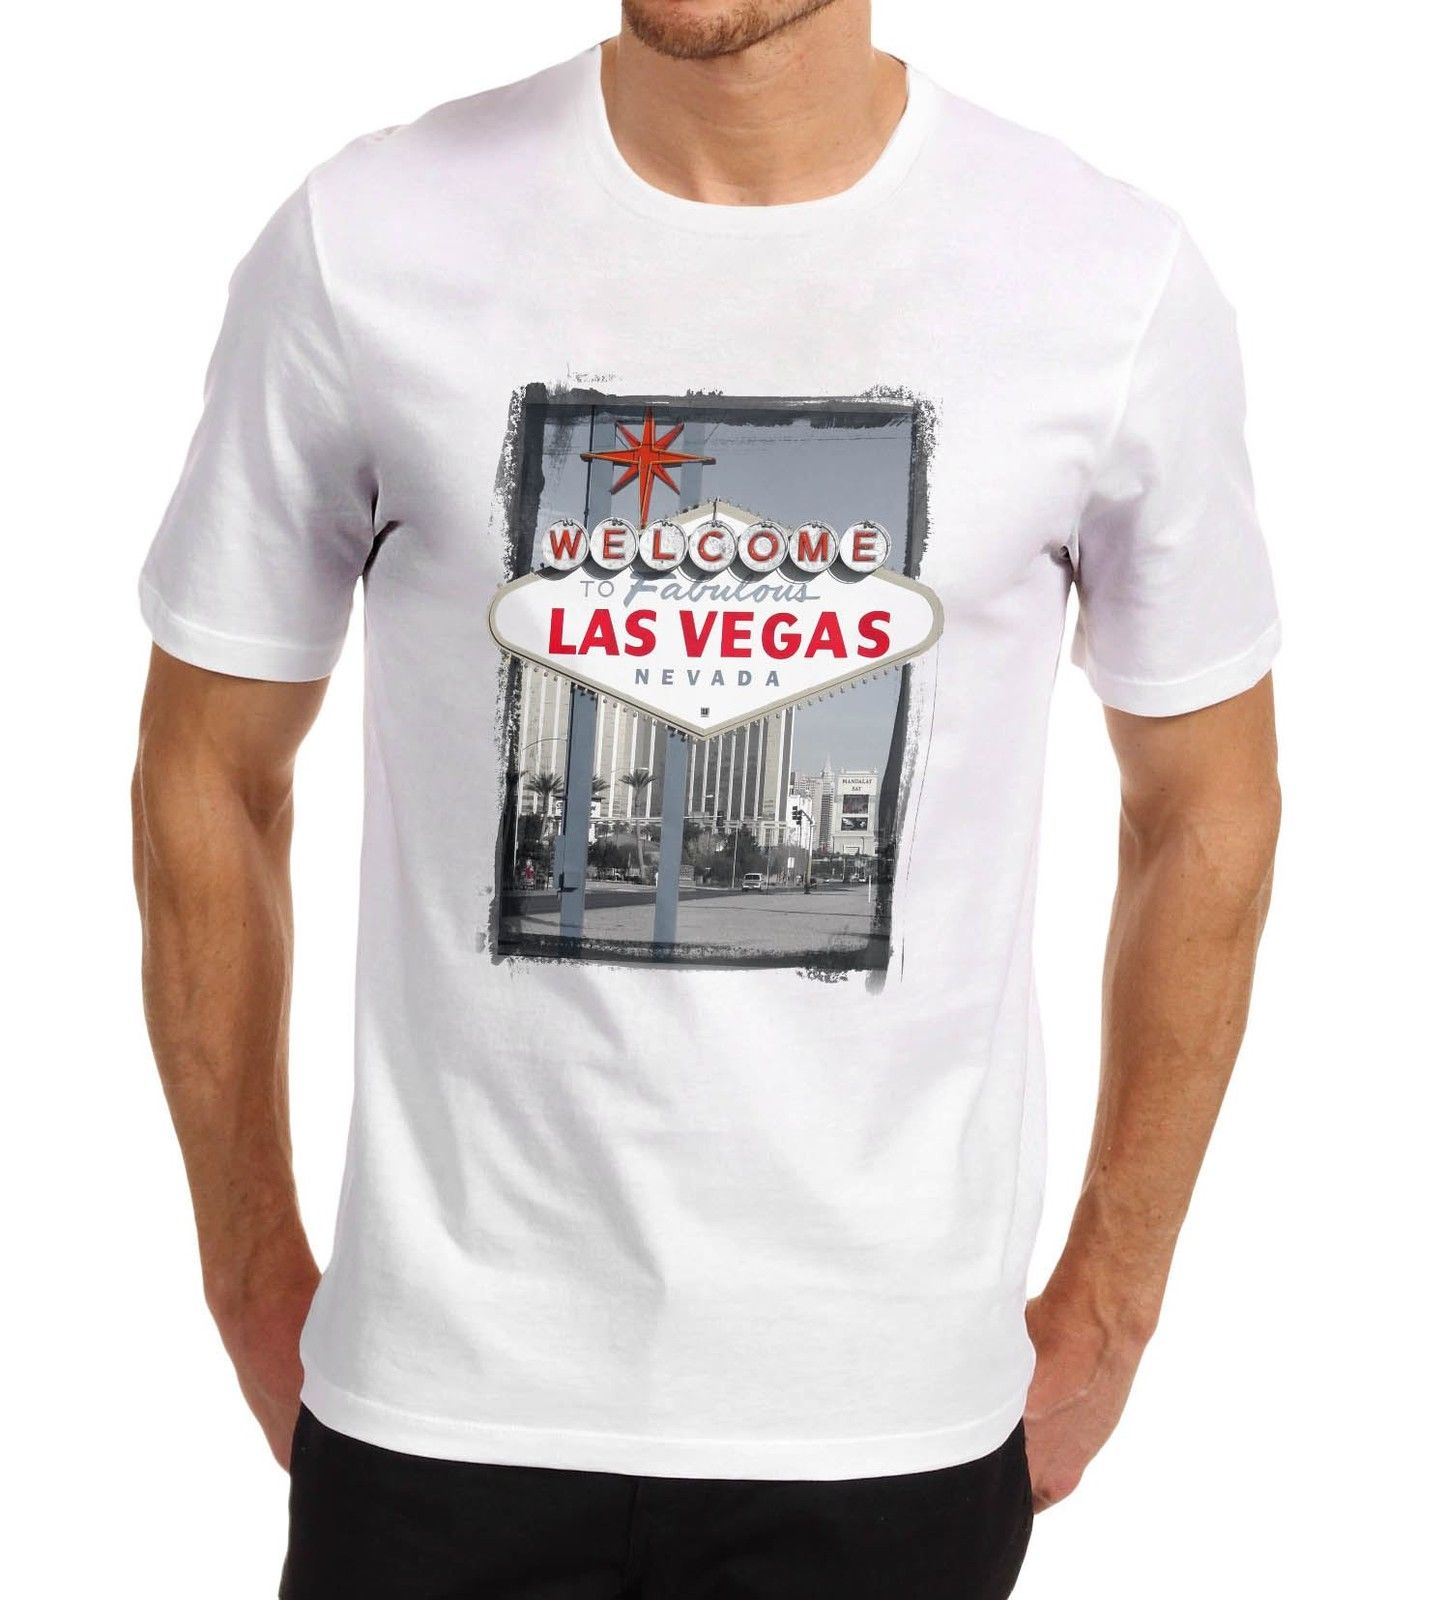 Design your own t shirt las vegas - Design T Shirt Welcome To Las Vegas Iconic Sign Printed O Neck Short Sleeve Office Mens Tee